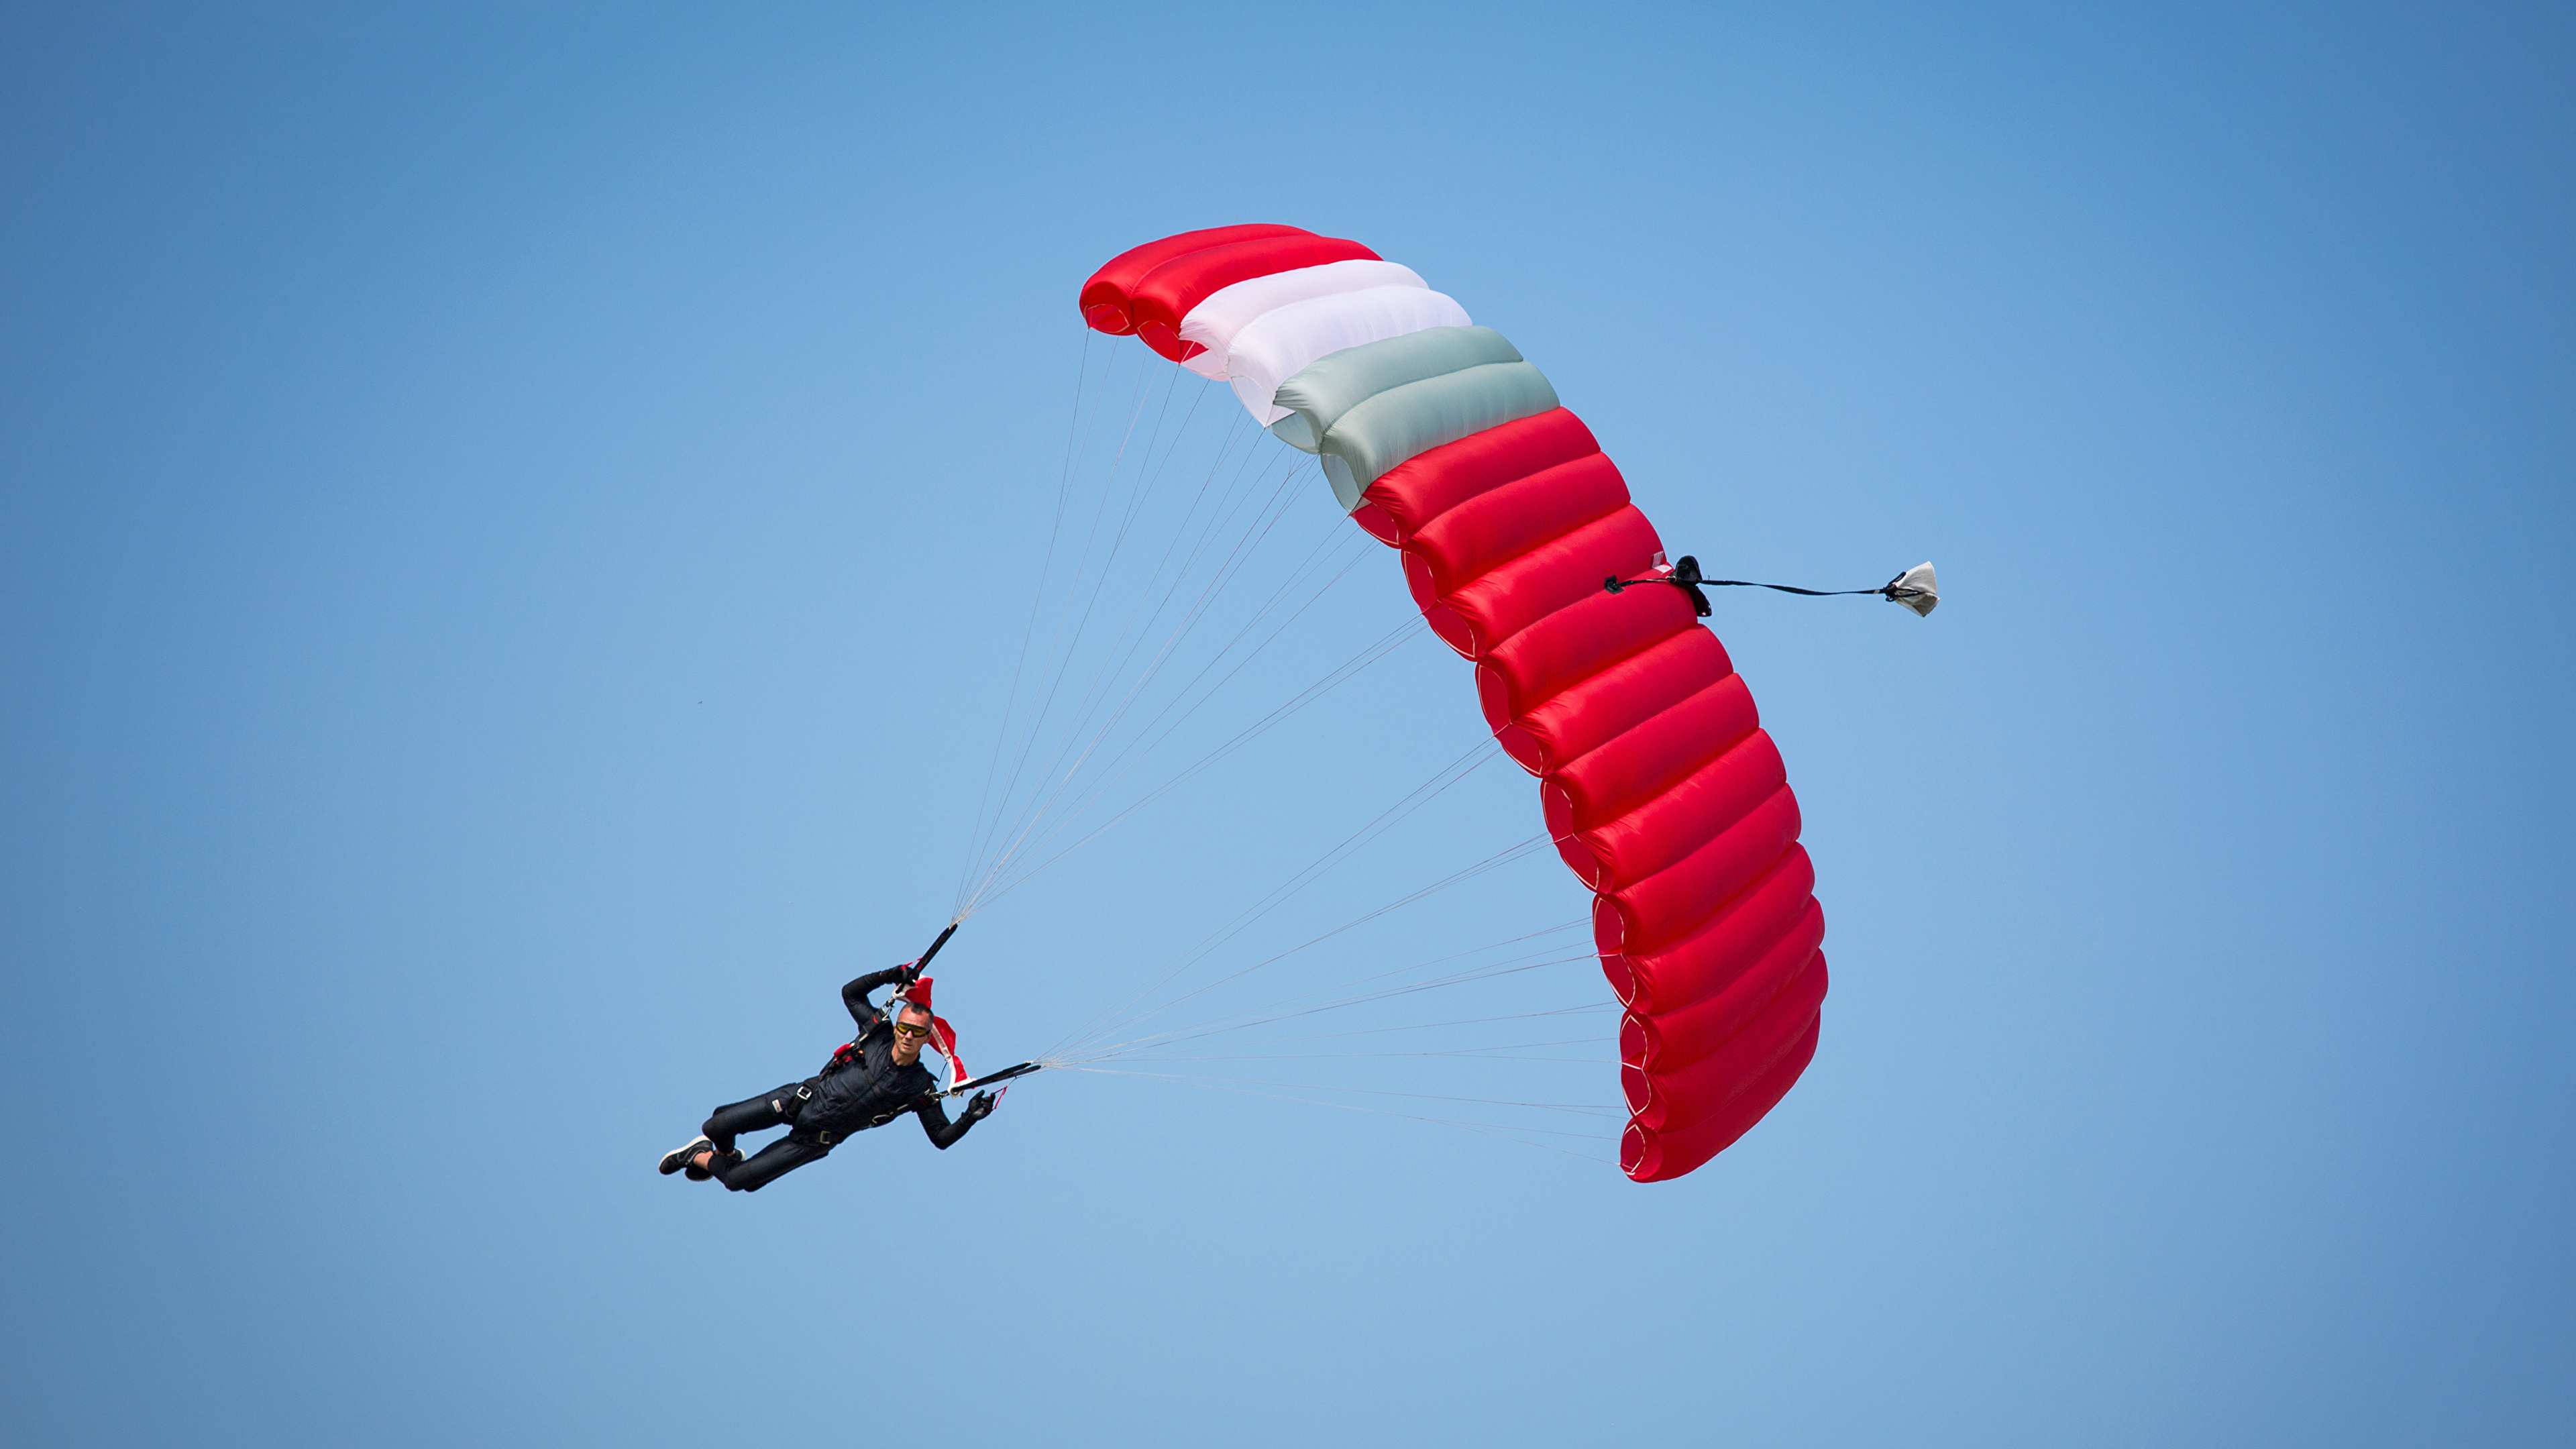 Wallpapers Man Sport Parachuting skydiving Sky 3840x2160